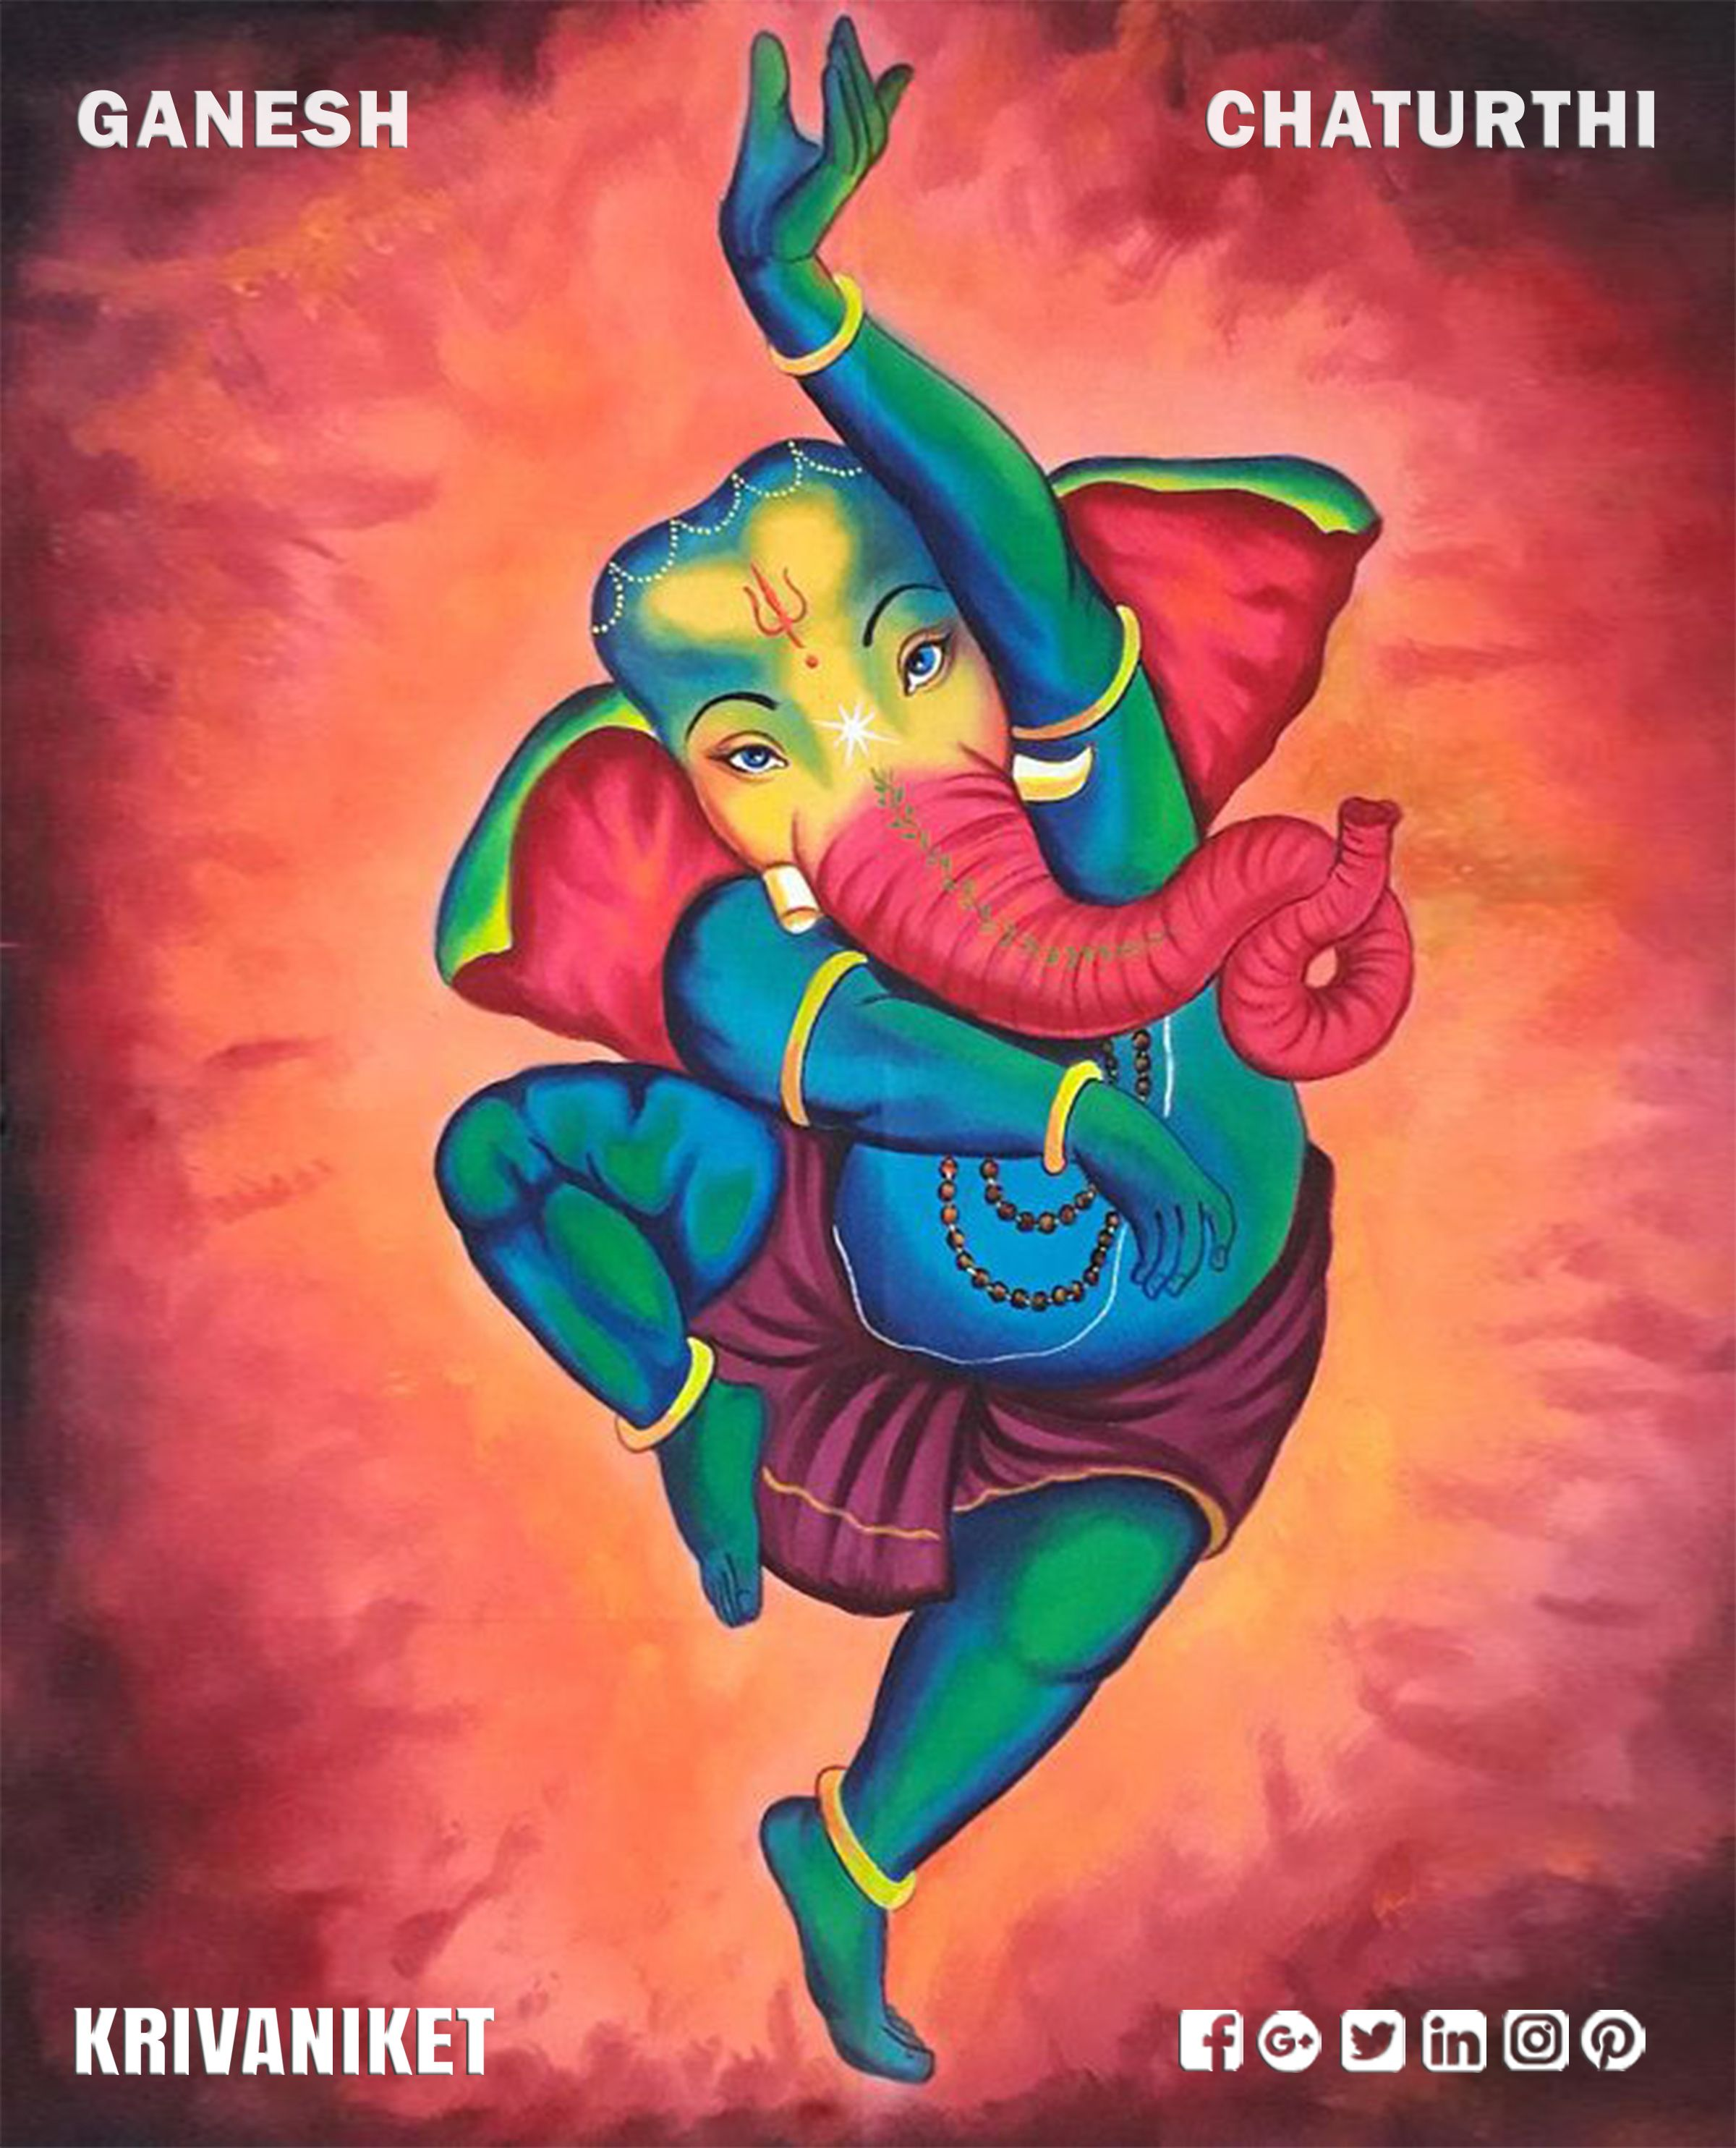 May Lord Ganesha destroy all your worries, sorrows and